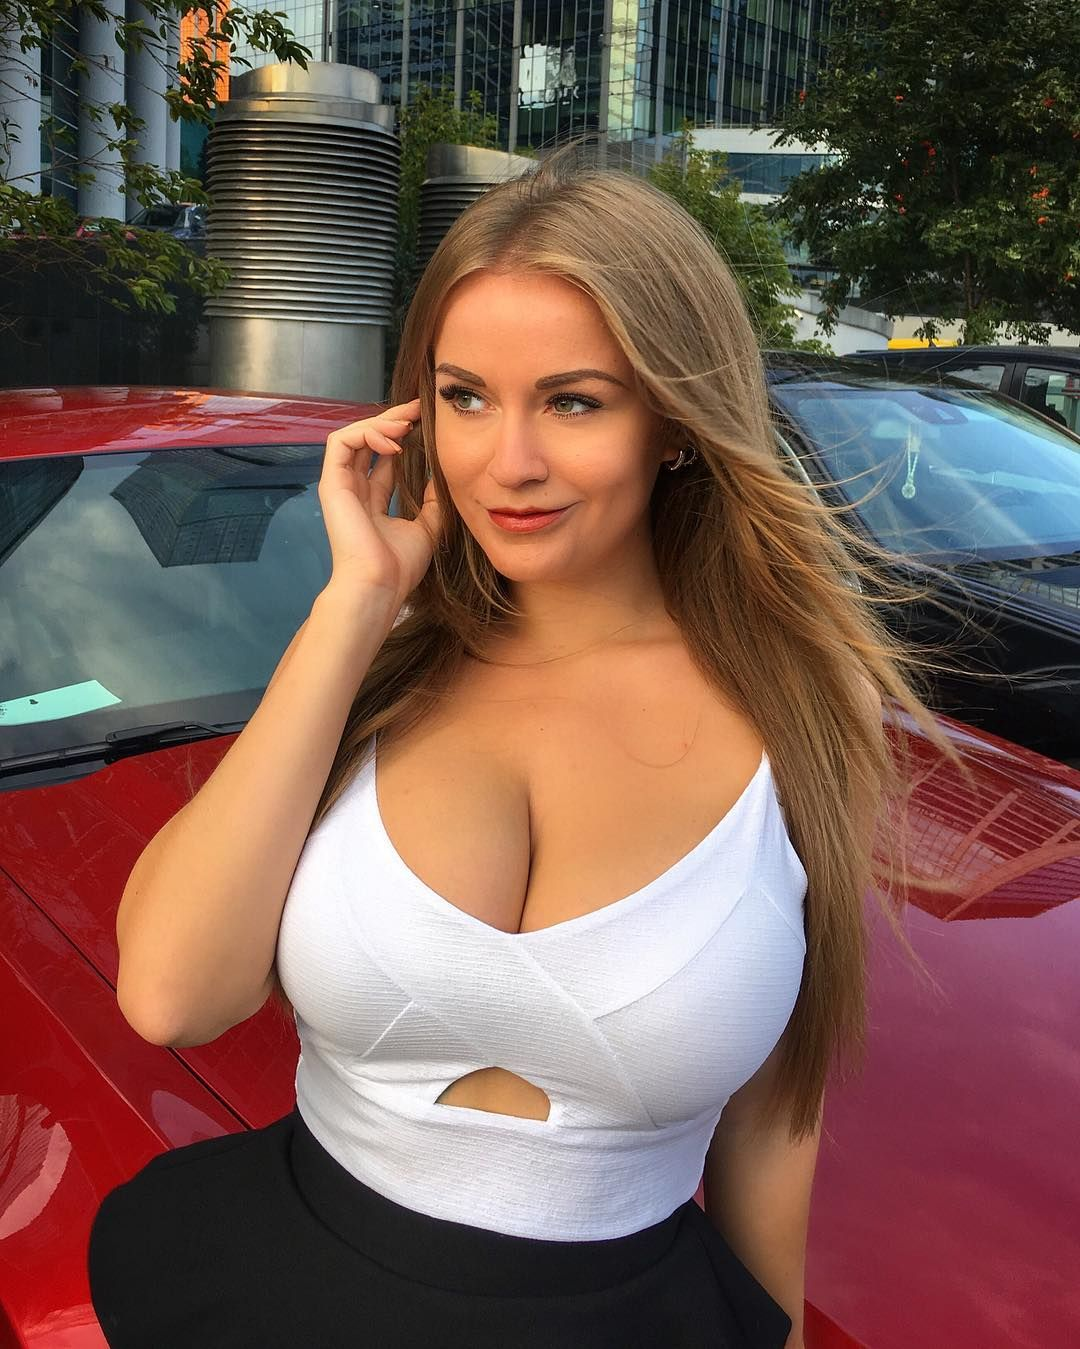 Boobs Heather Carr nudes (31 photo), Sexy, Is a cute, Boobs, lingerie 2019